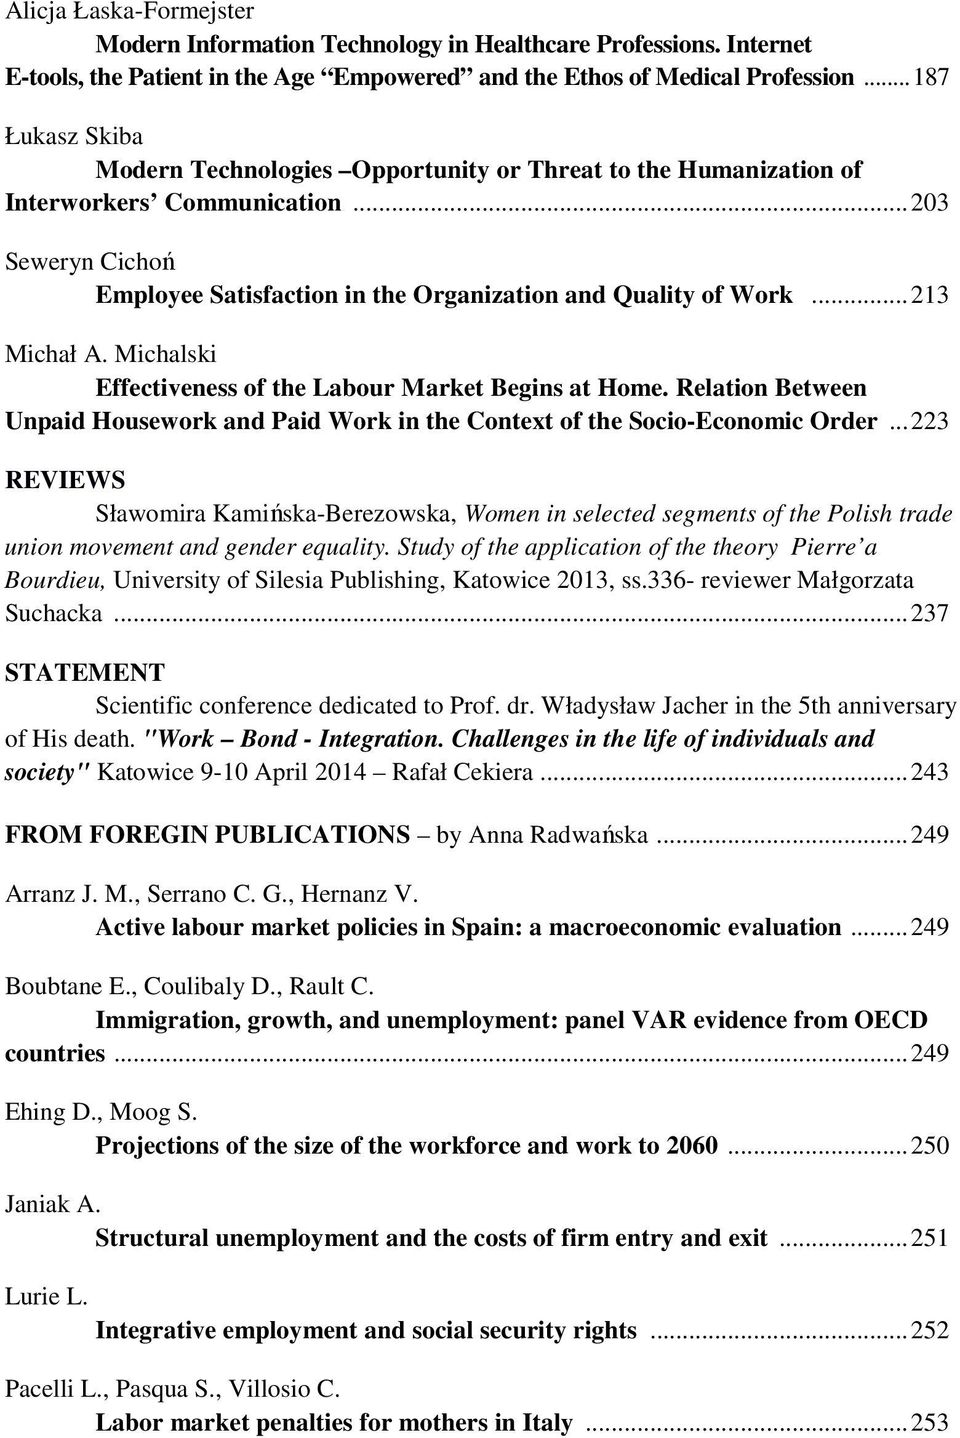 ..213 Michał A. Michalski Effectiveness of the Labour Market Begins at Home. Relation Between Unpaid Housework and Paid Work in the Context of the Socio-Economic Order.